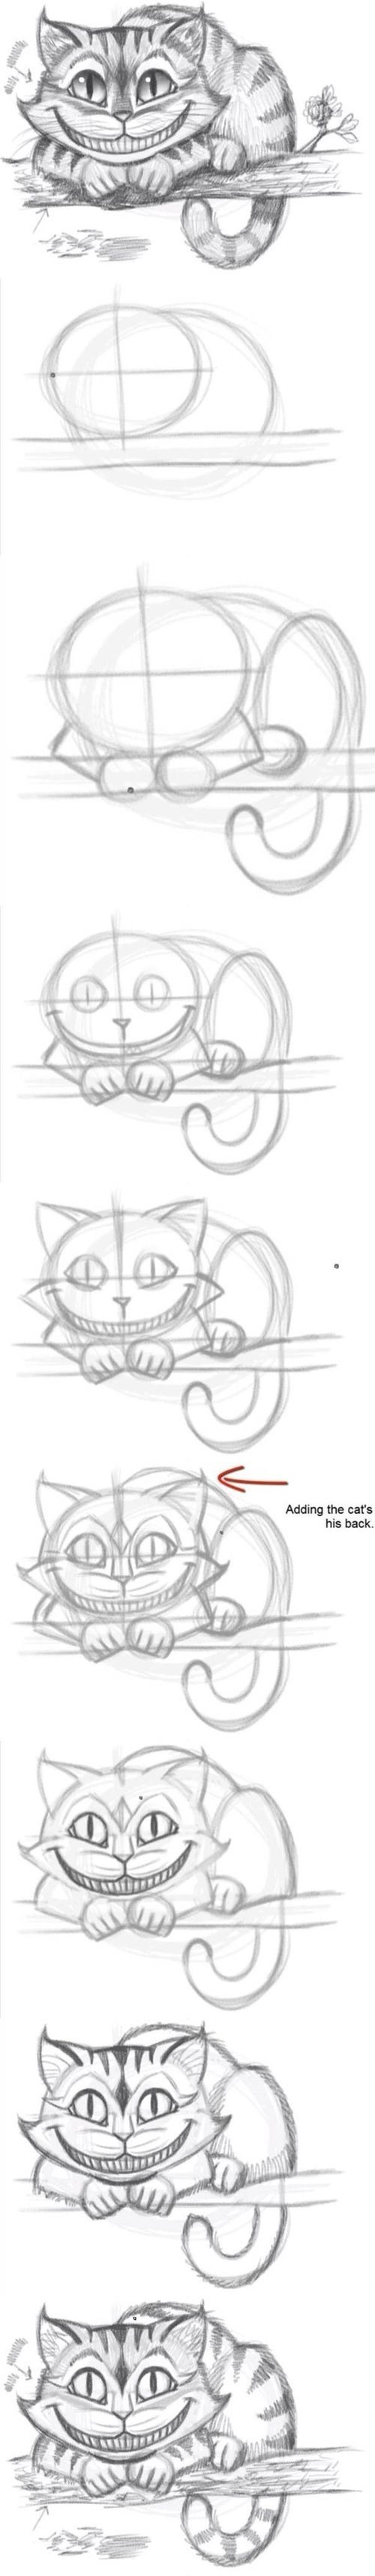 learn how to draw a chestshire cat